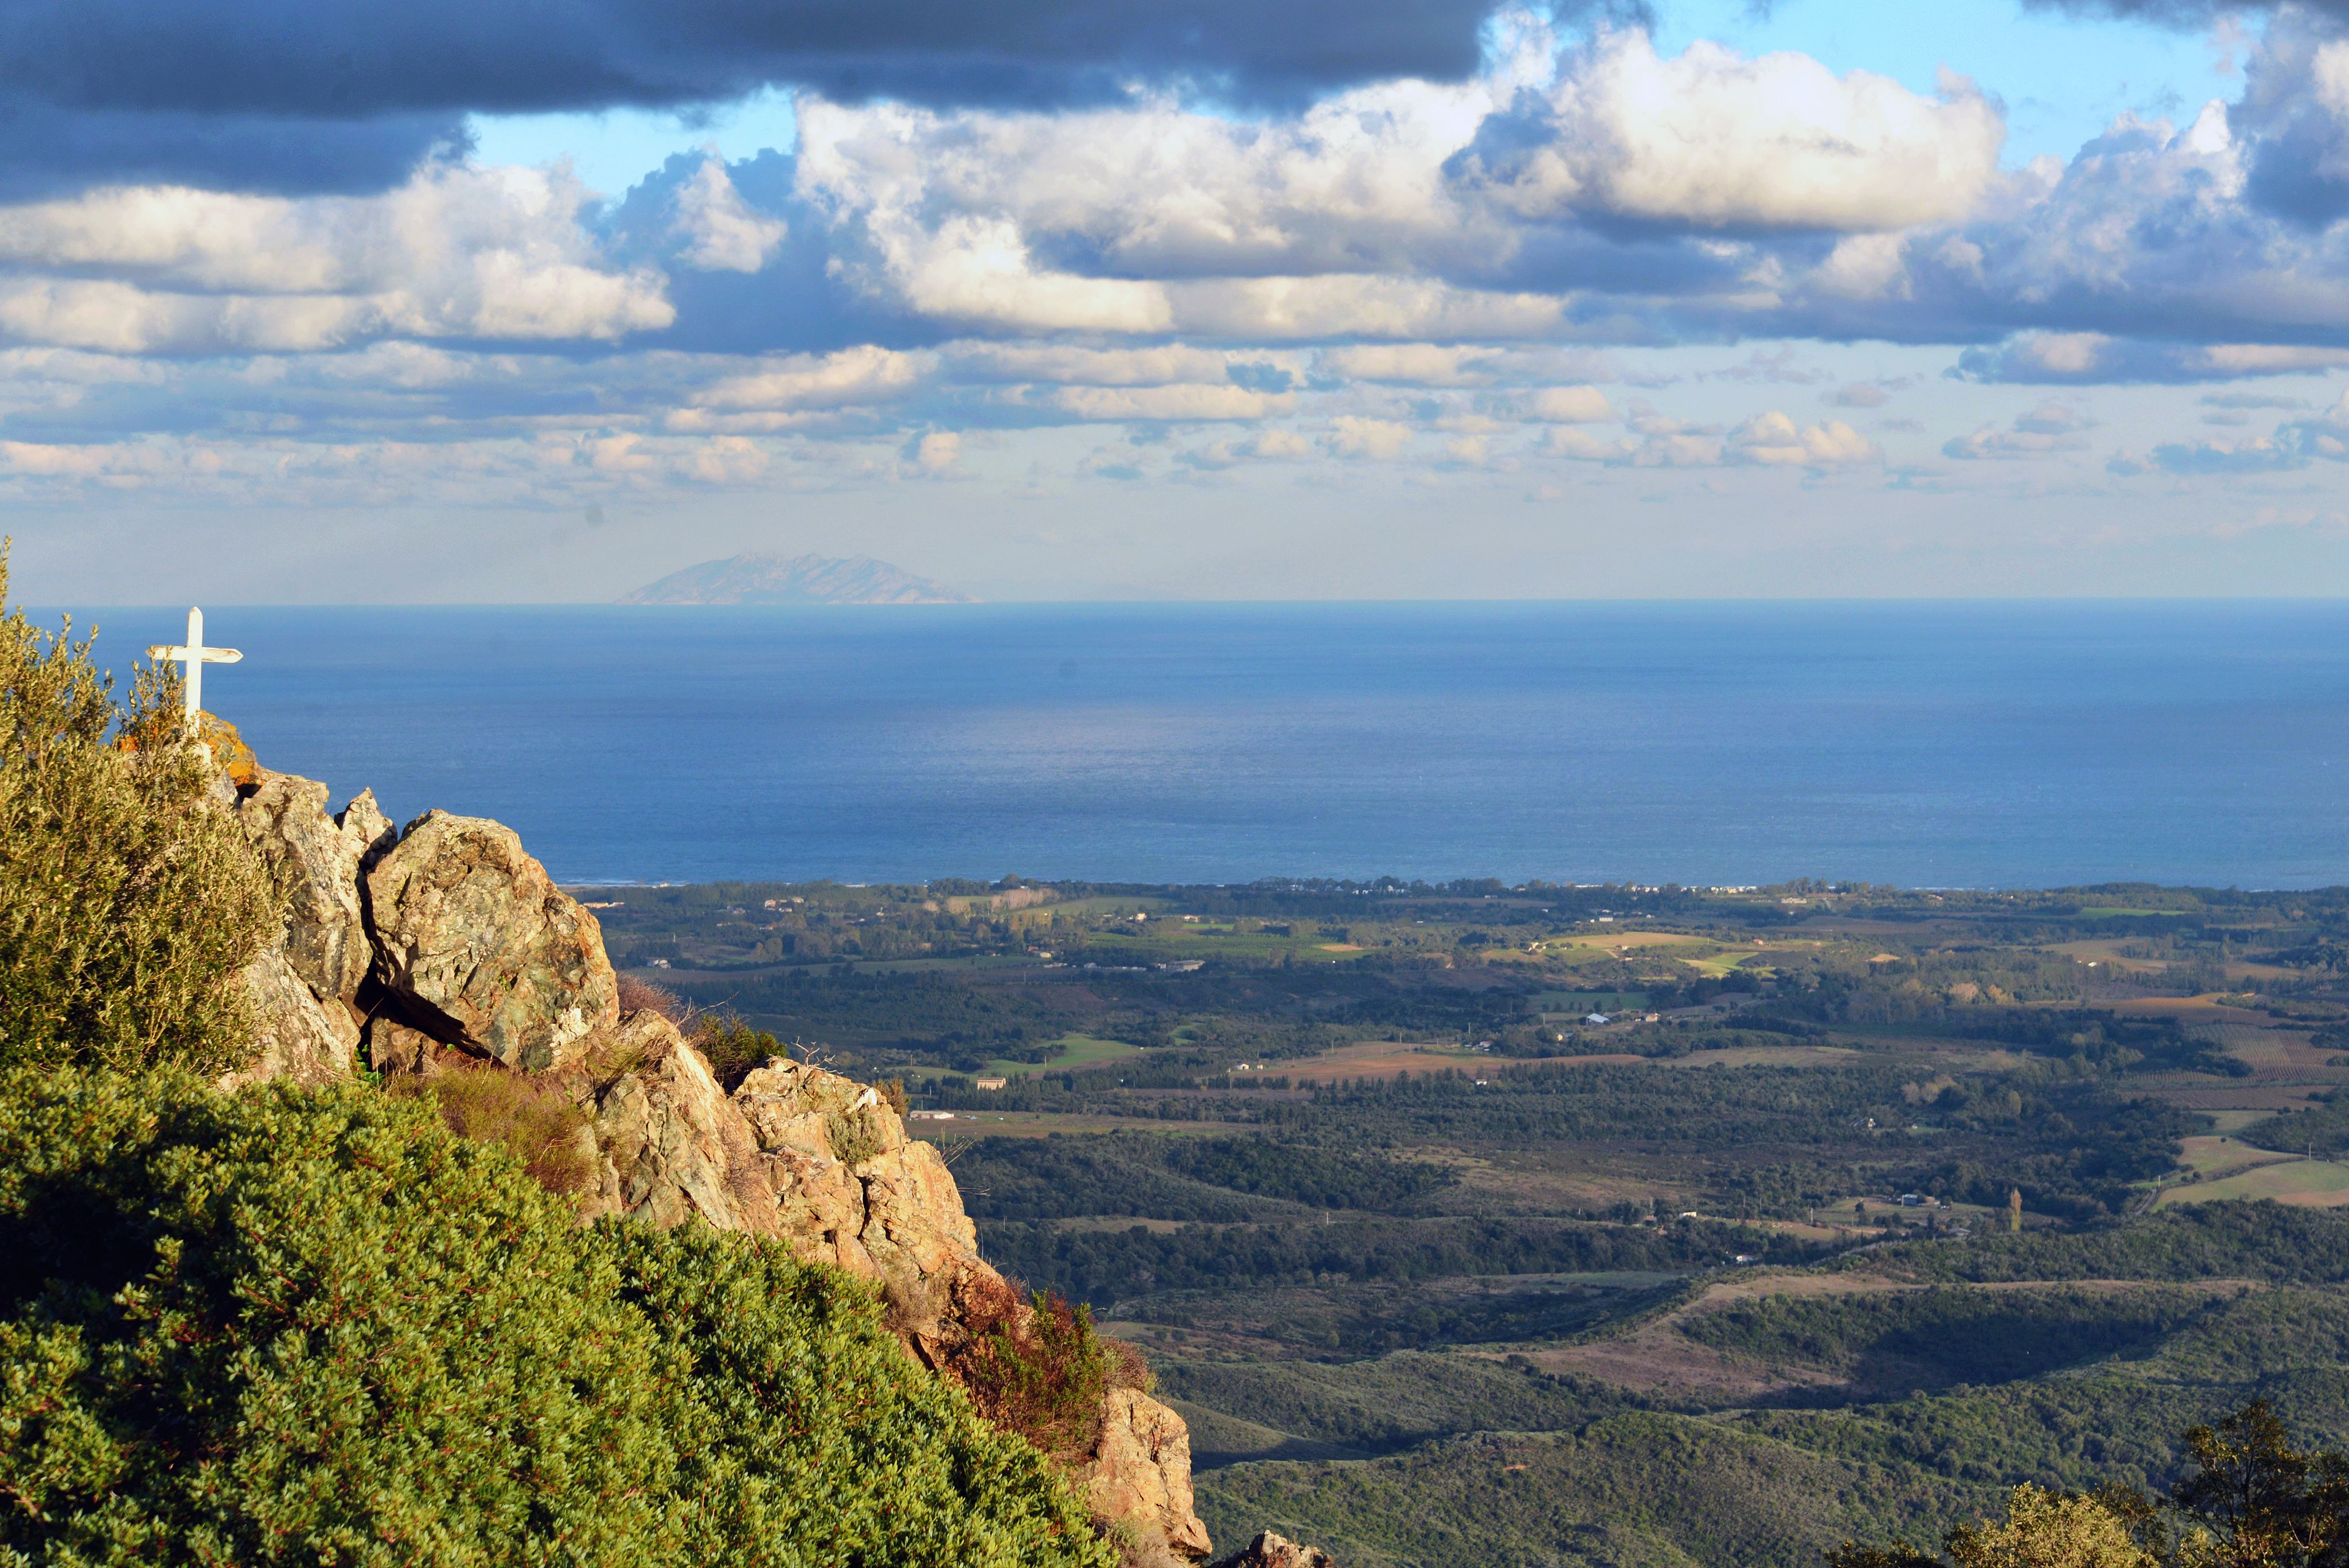 Tox, Costa Verde (Corsica) - The plain of Linguizzetta and the island of Montecristo seen from the chapel of Our Lady of Grace,( Notre-Dame des Grâces)